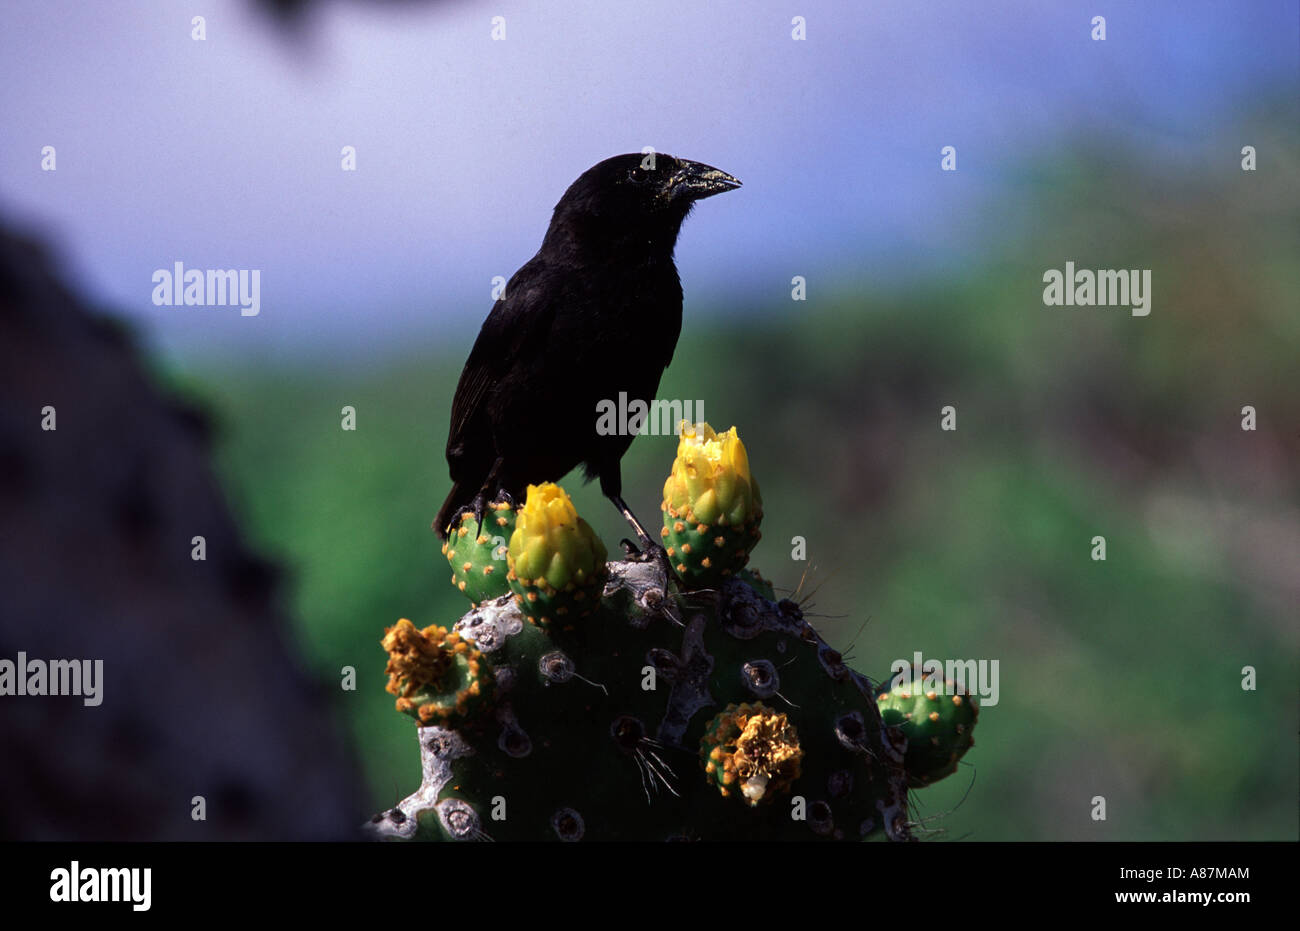 cactus ground finch Geospiza scandens Isabela Galapagos Island Ecuador South Ameriaca - Stock Image